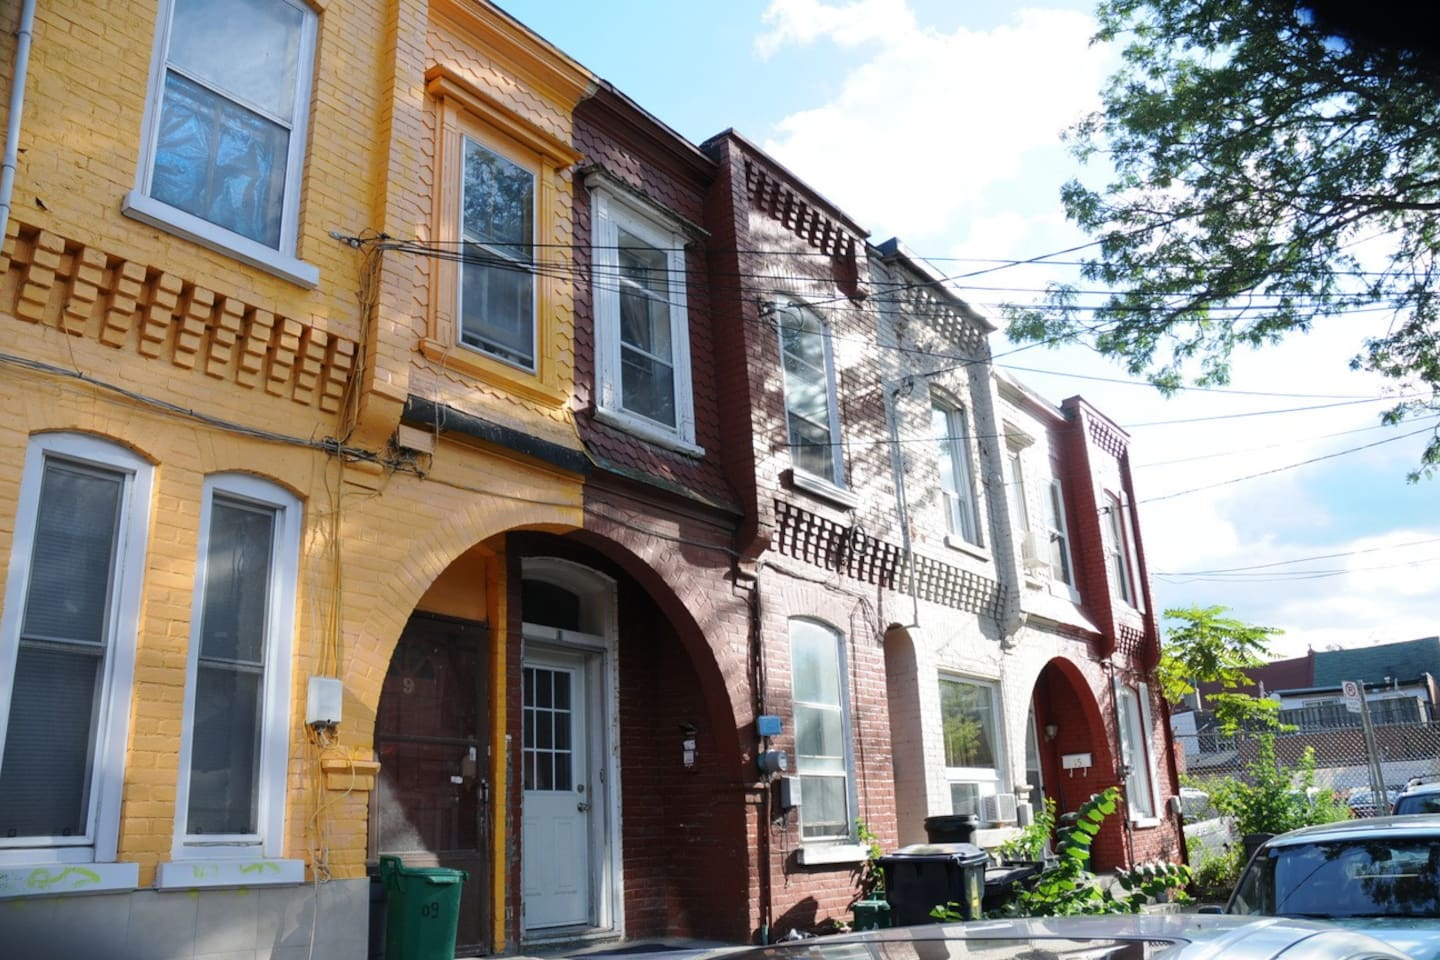 The apt is located in this famous 1888 building in one of 3 hidden streets in Kensington Market.